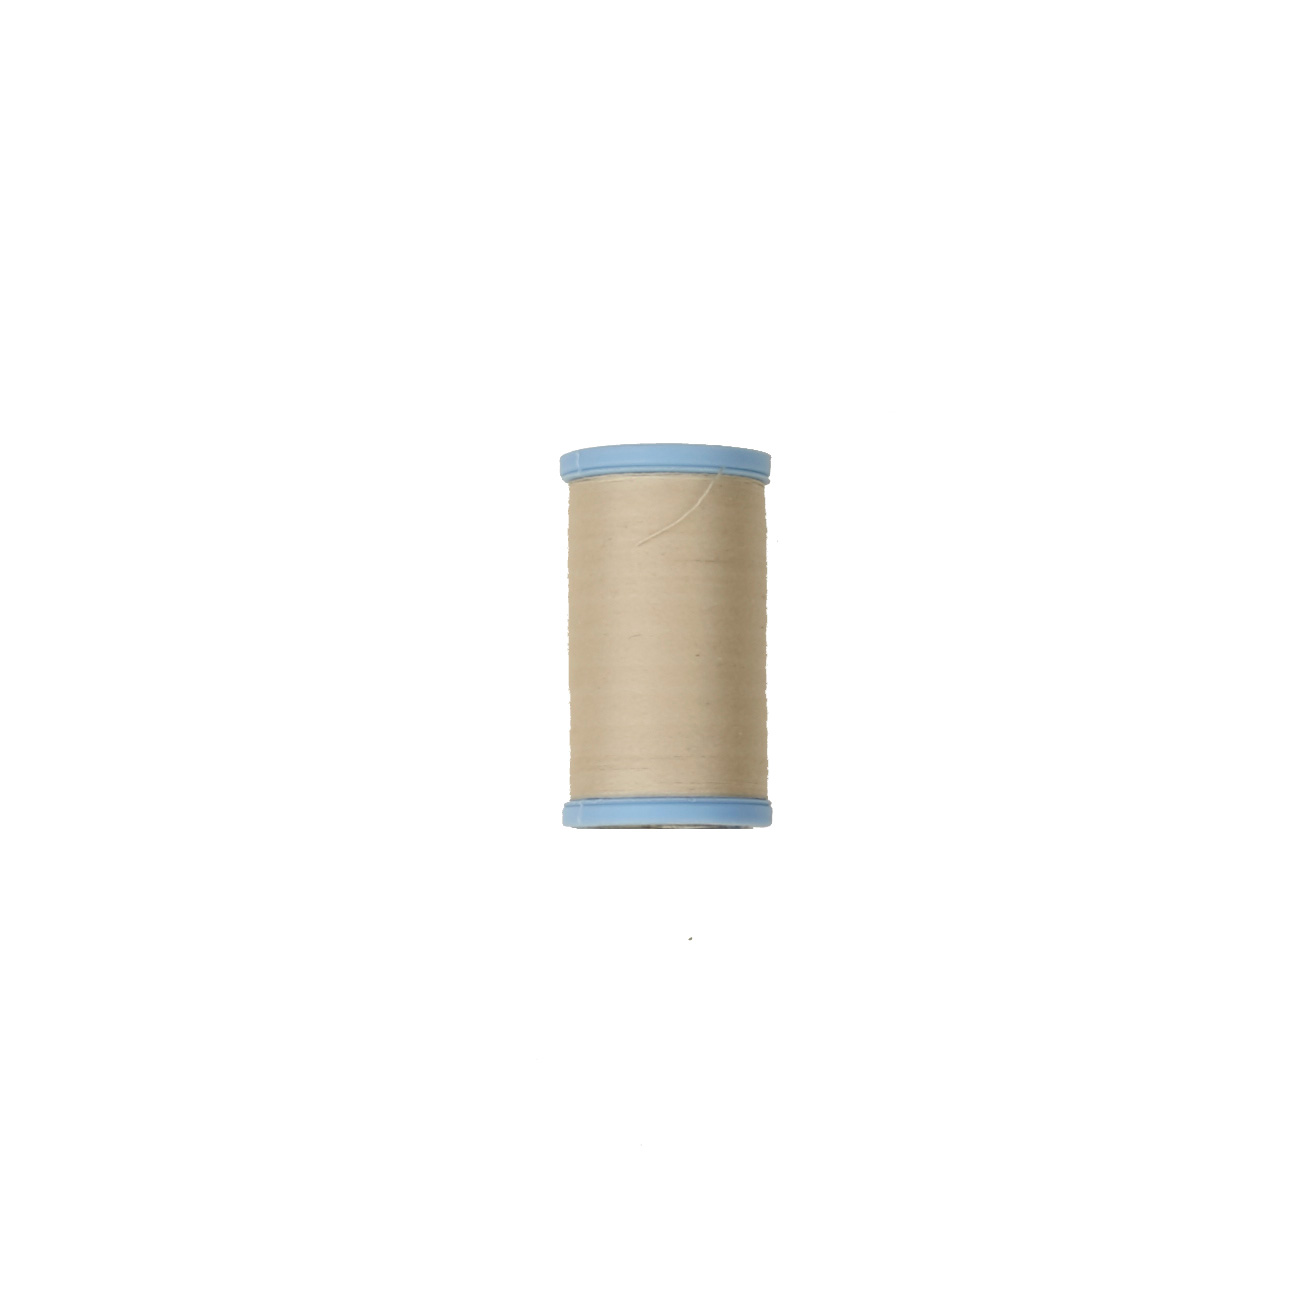 Coats & Clark Cotton Covered Quilting & Piecing Thread 500 Yds. Natural by Coats & Clark in USA